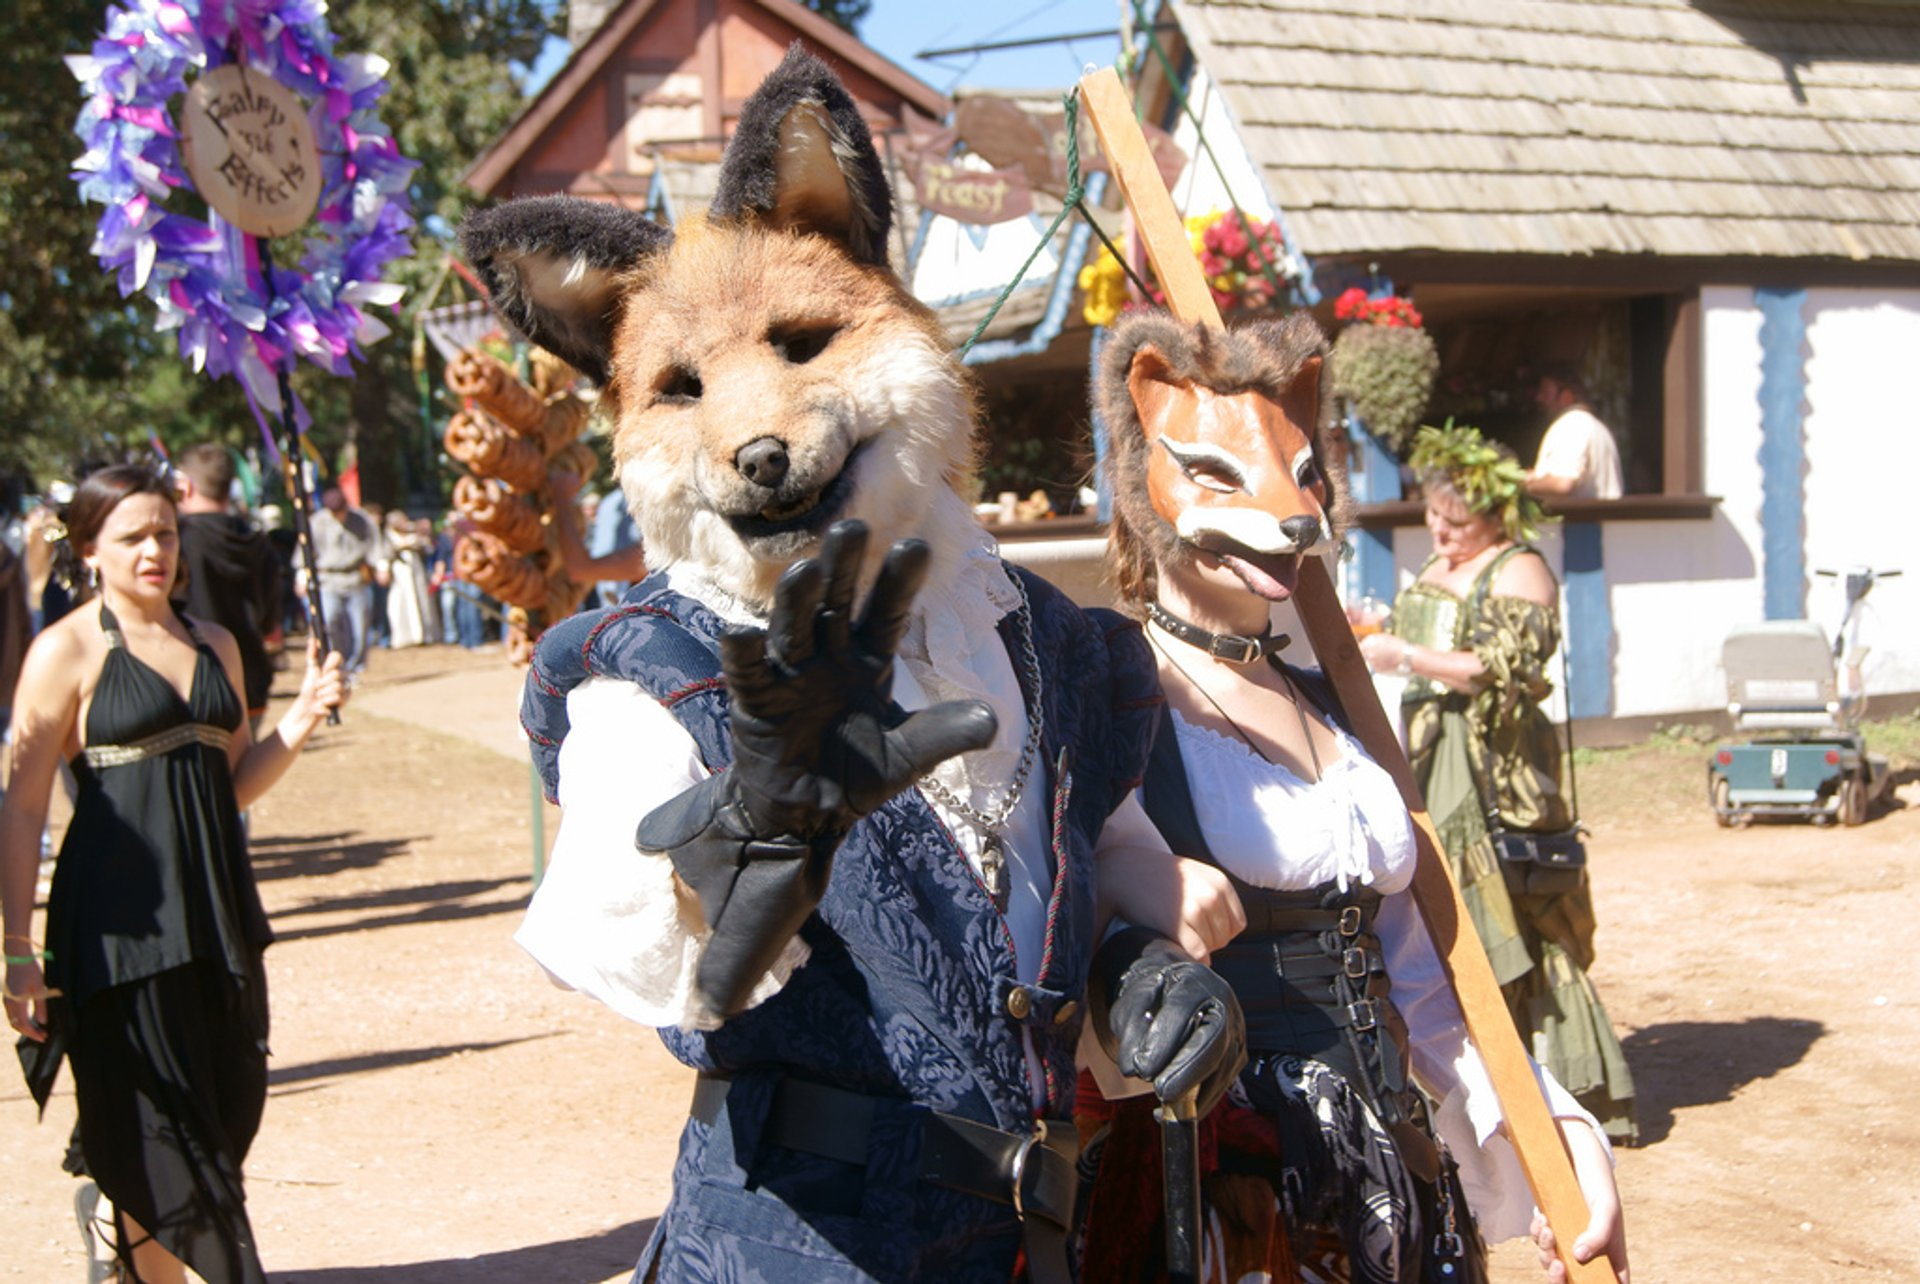 Best time to see Texas Renaissance Festival in Texas 2020